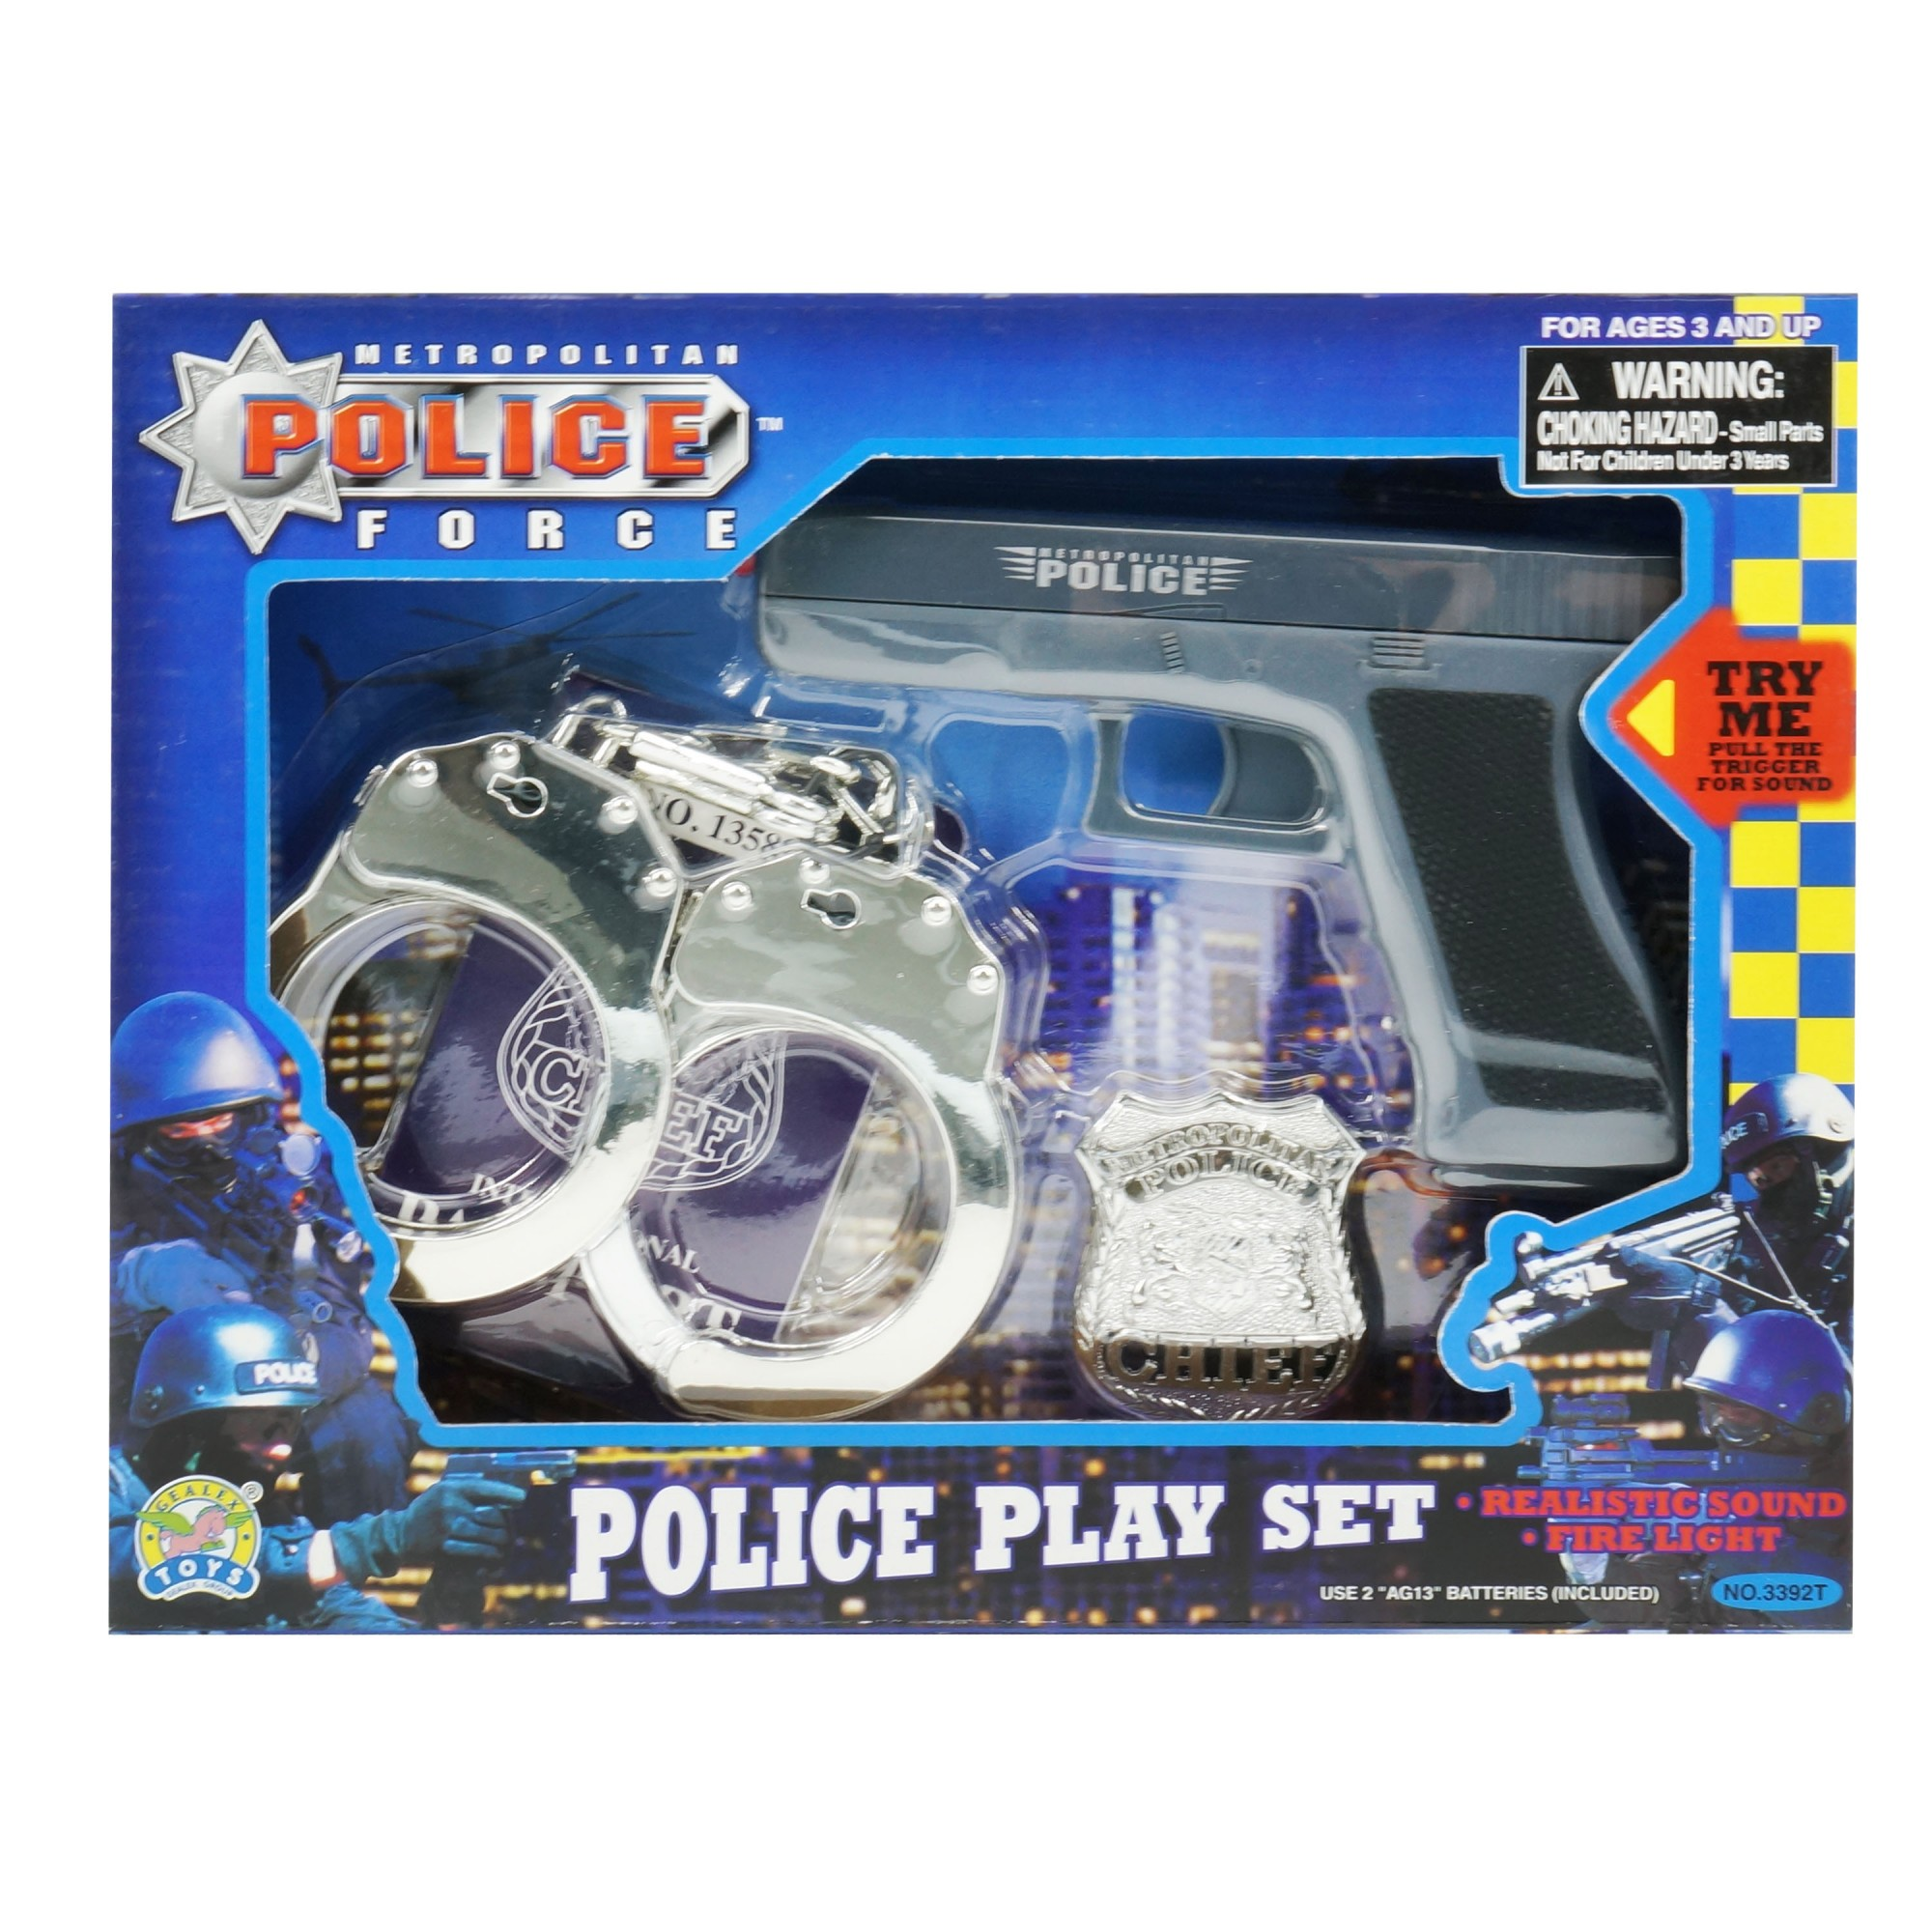 Electronic Police Play Set (Glock 17)